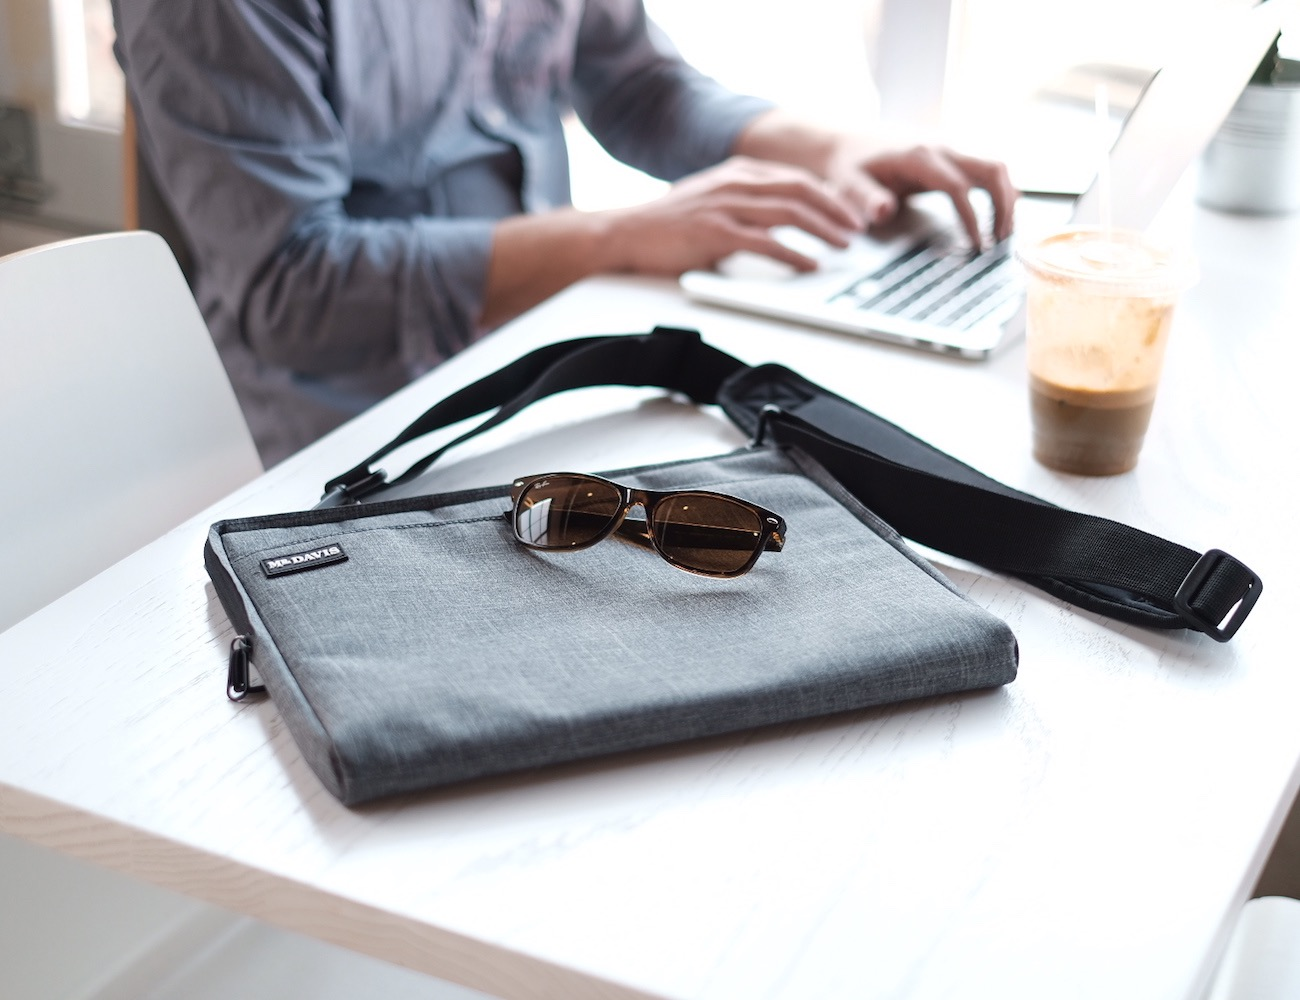 Continuum Bag – The Best Carry-On for One Bag Travel